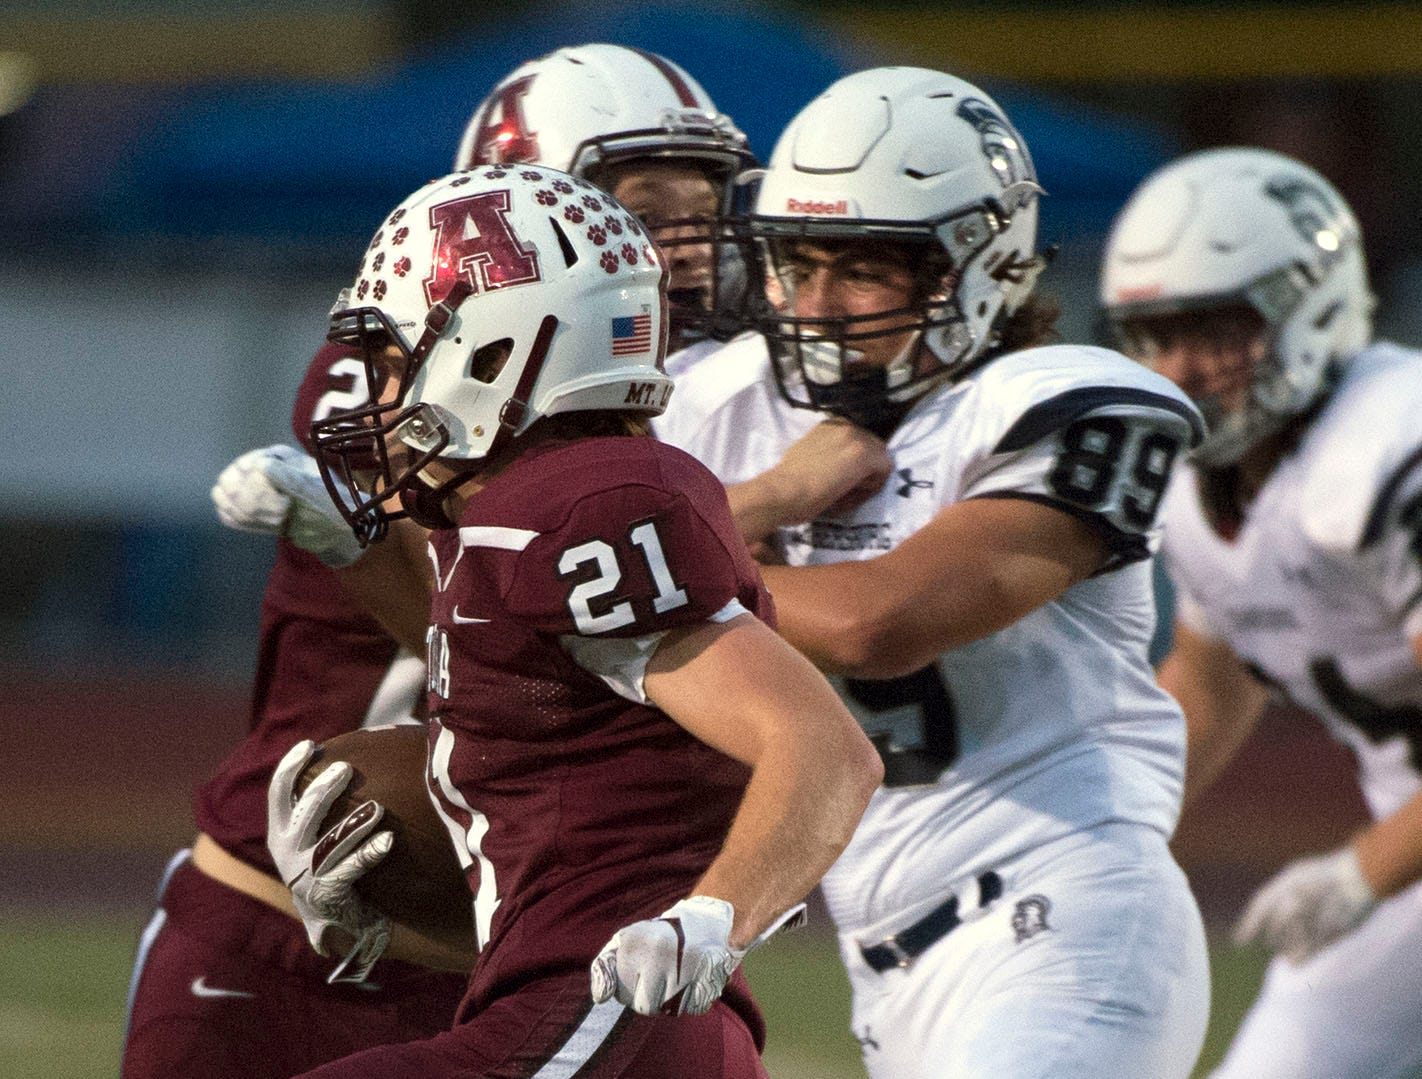 Altoona's Connor Adams (21) tries to get around Chambersburg's Carmen Pompeii (89). Chambersburg defeated Altoona 48-28 in PIAA football to move to 4-0 on Friday, Sept. 14, 2018.